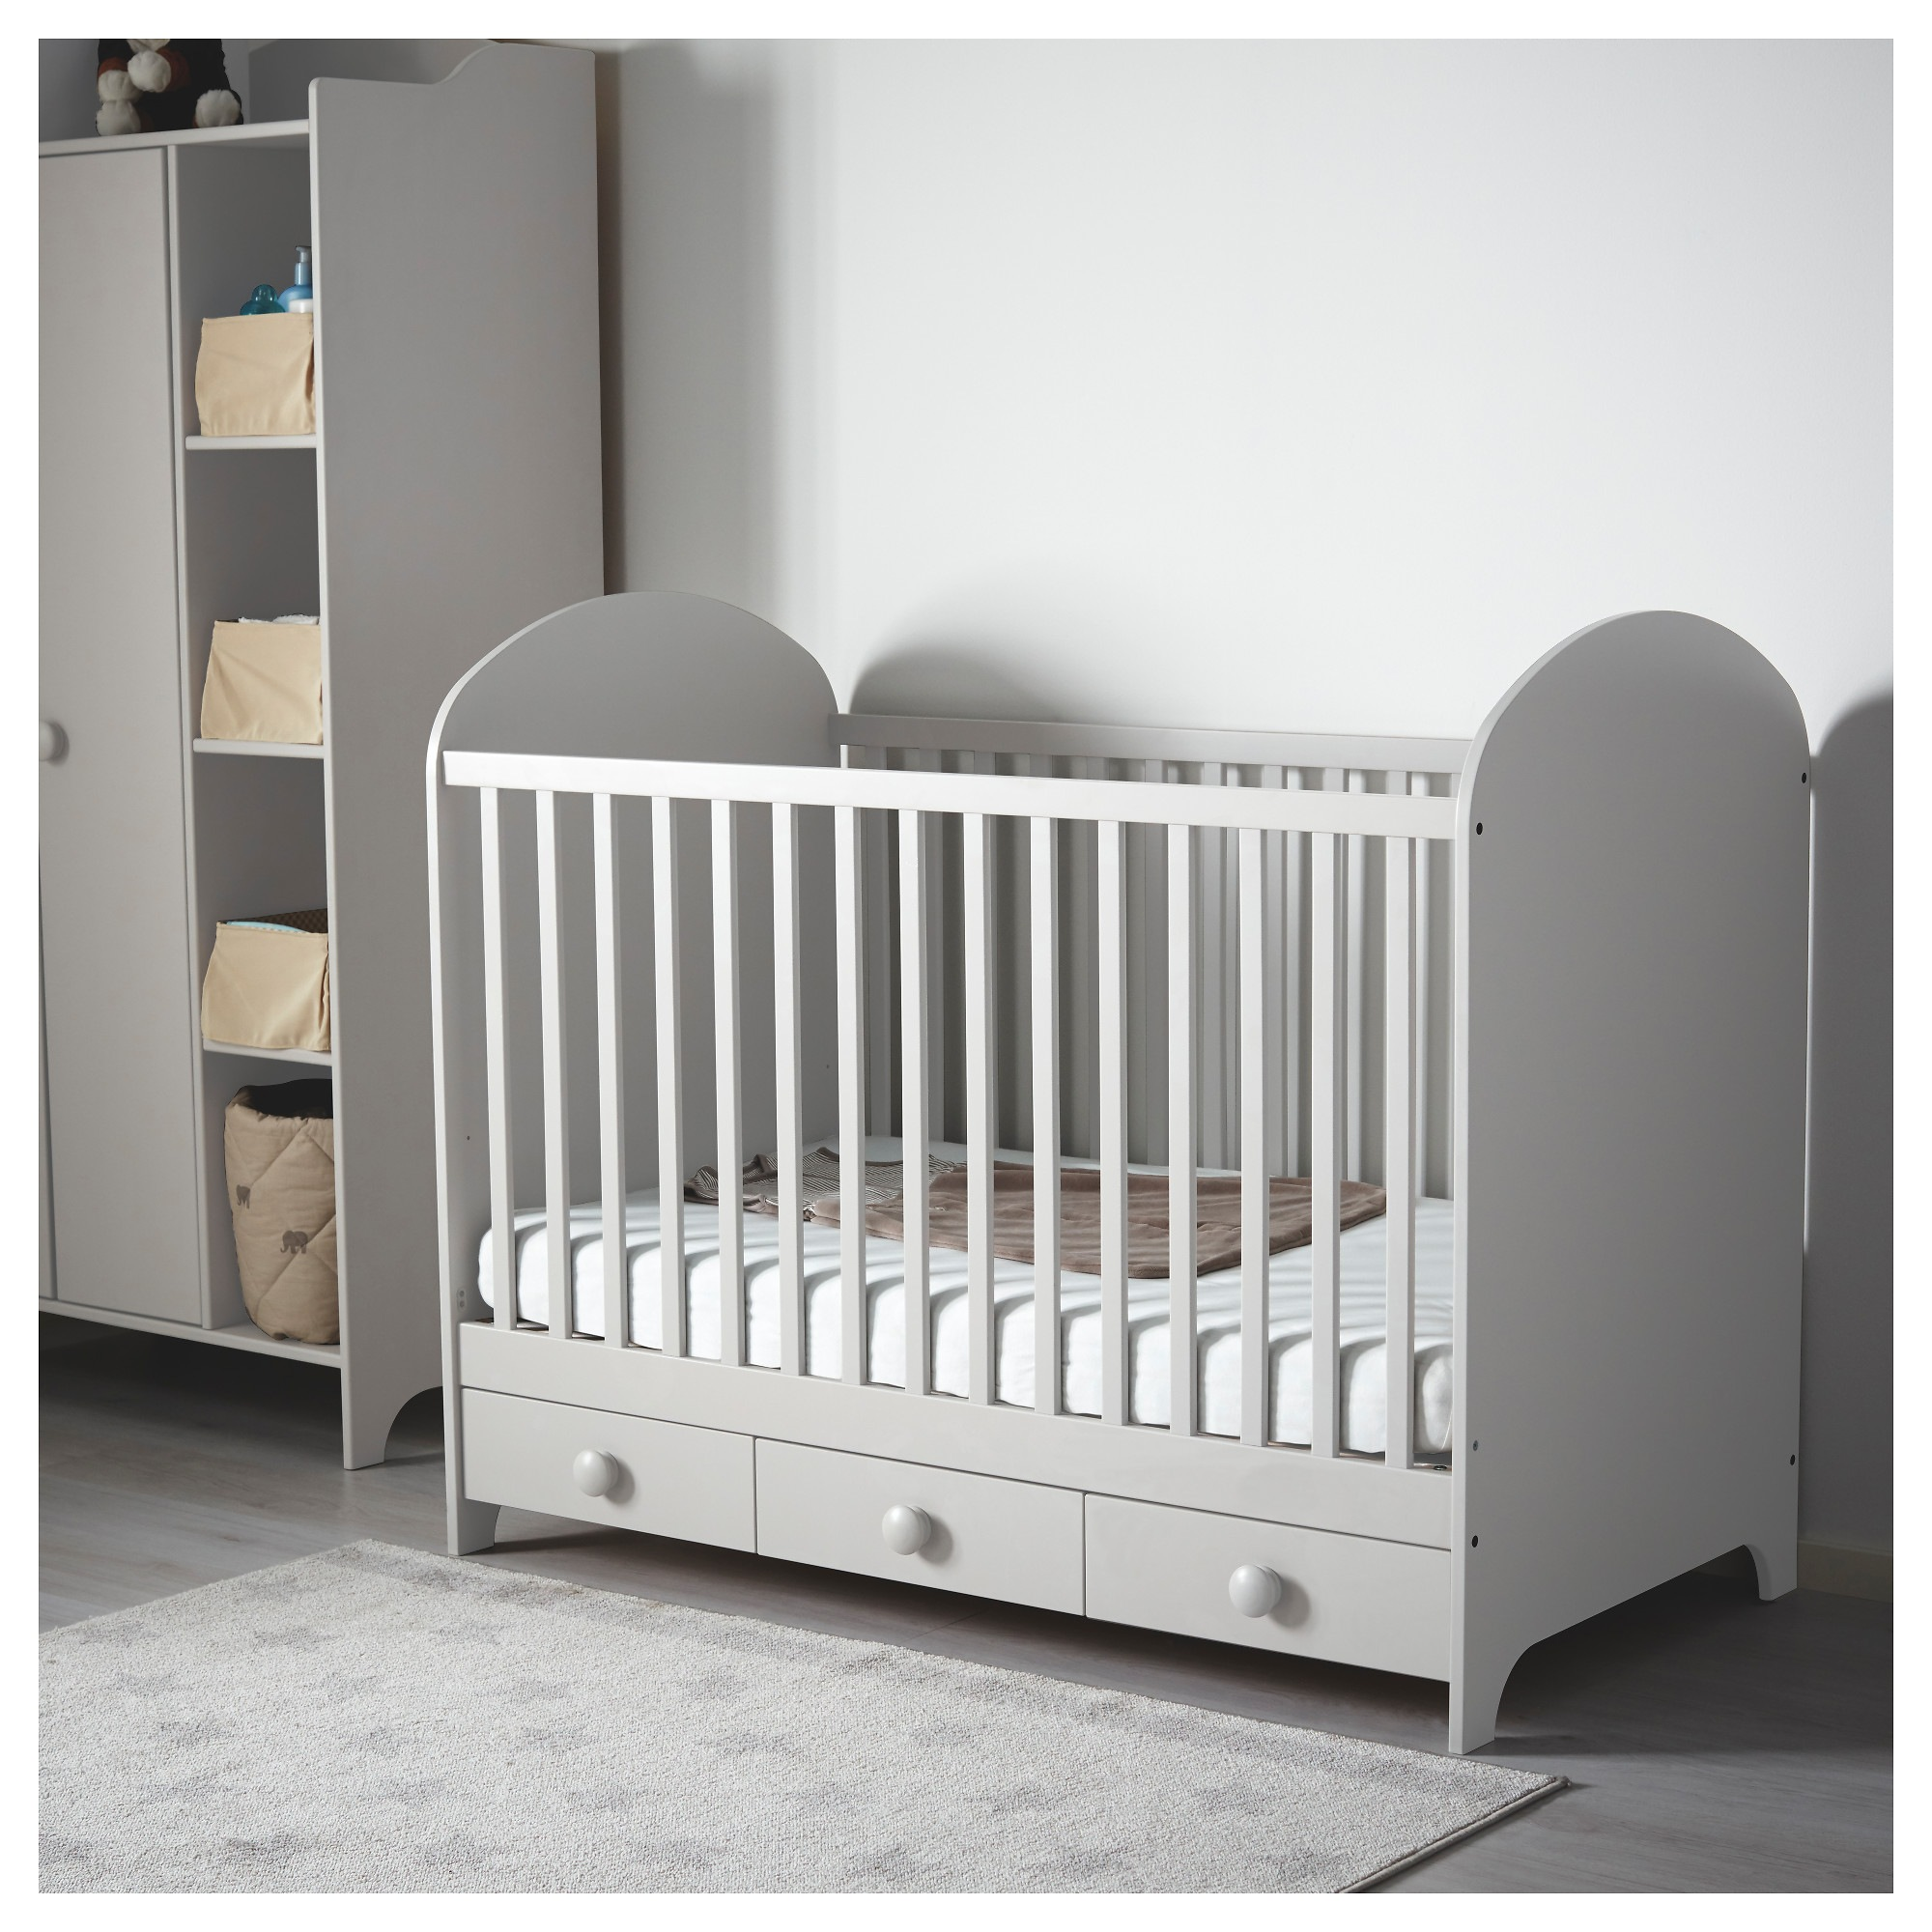 Baby cribs york region - Baby Cribs York Region 47